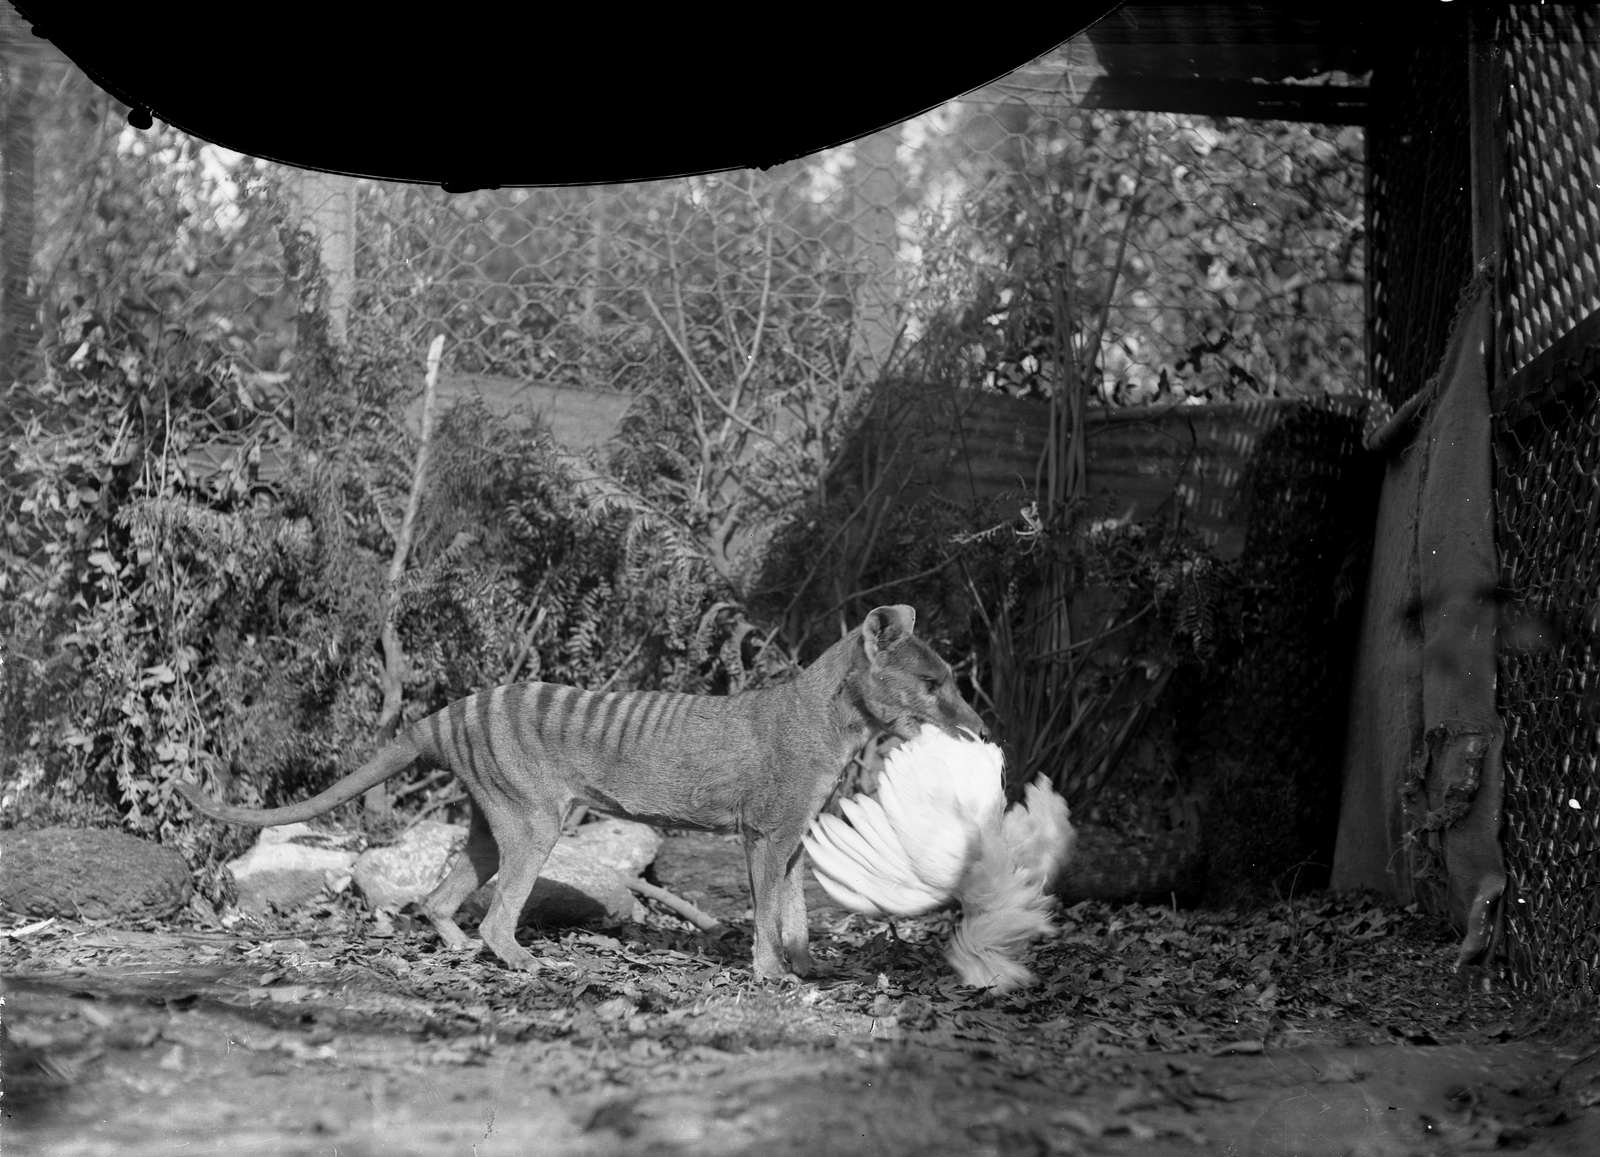 Staged Thylacine uncropped plate